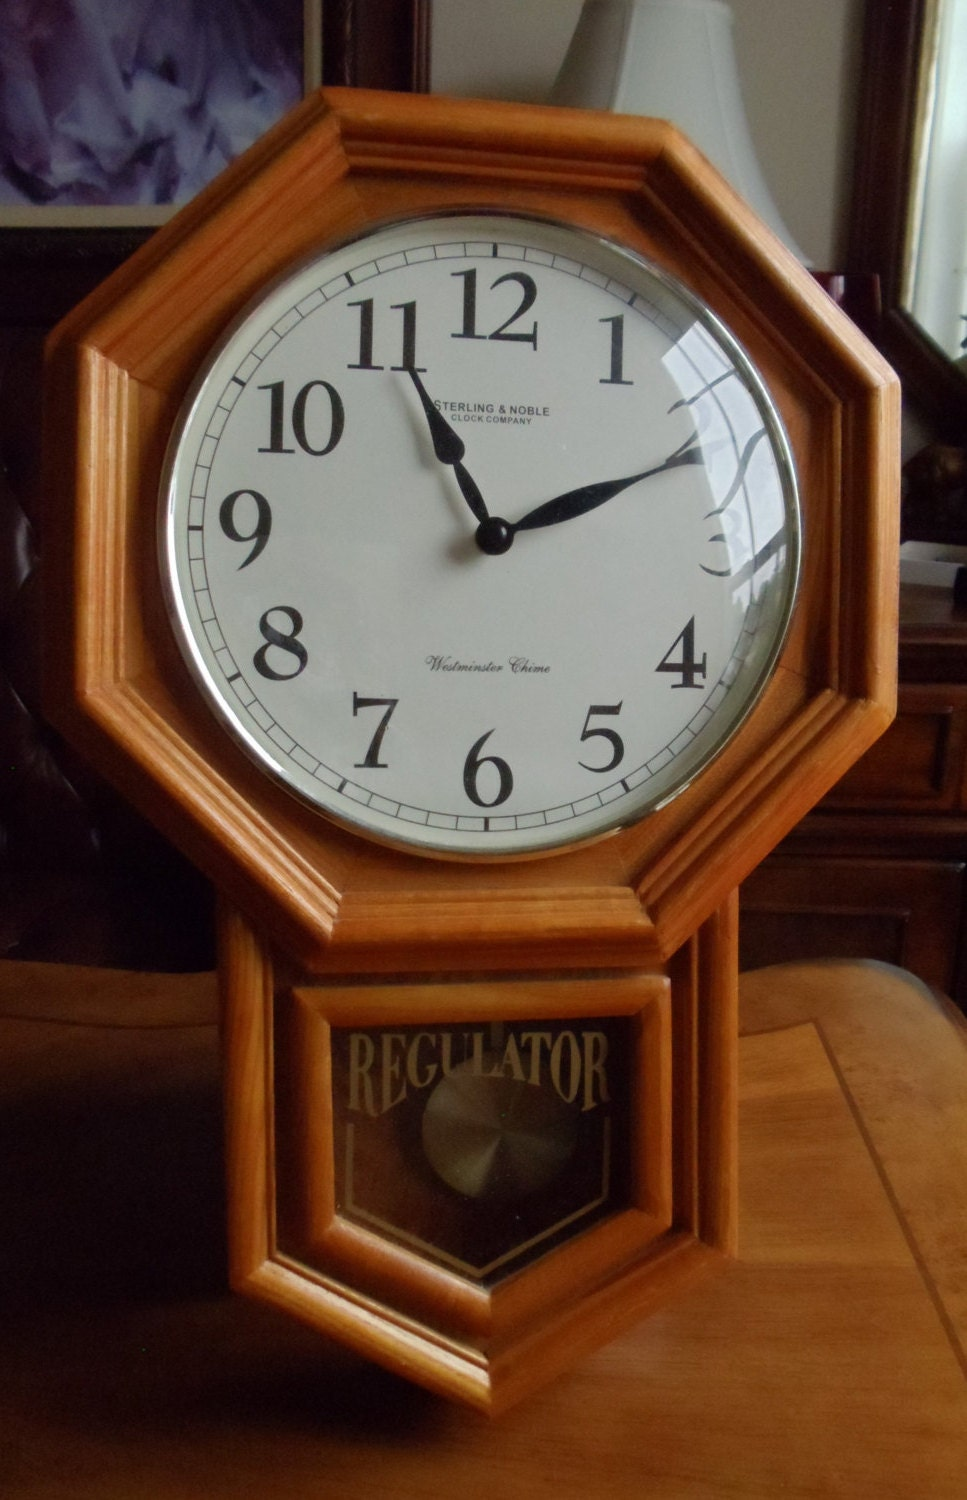 Vintage Large Wall Clock Sterling Amp Noble Clock Co